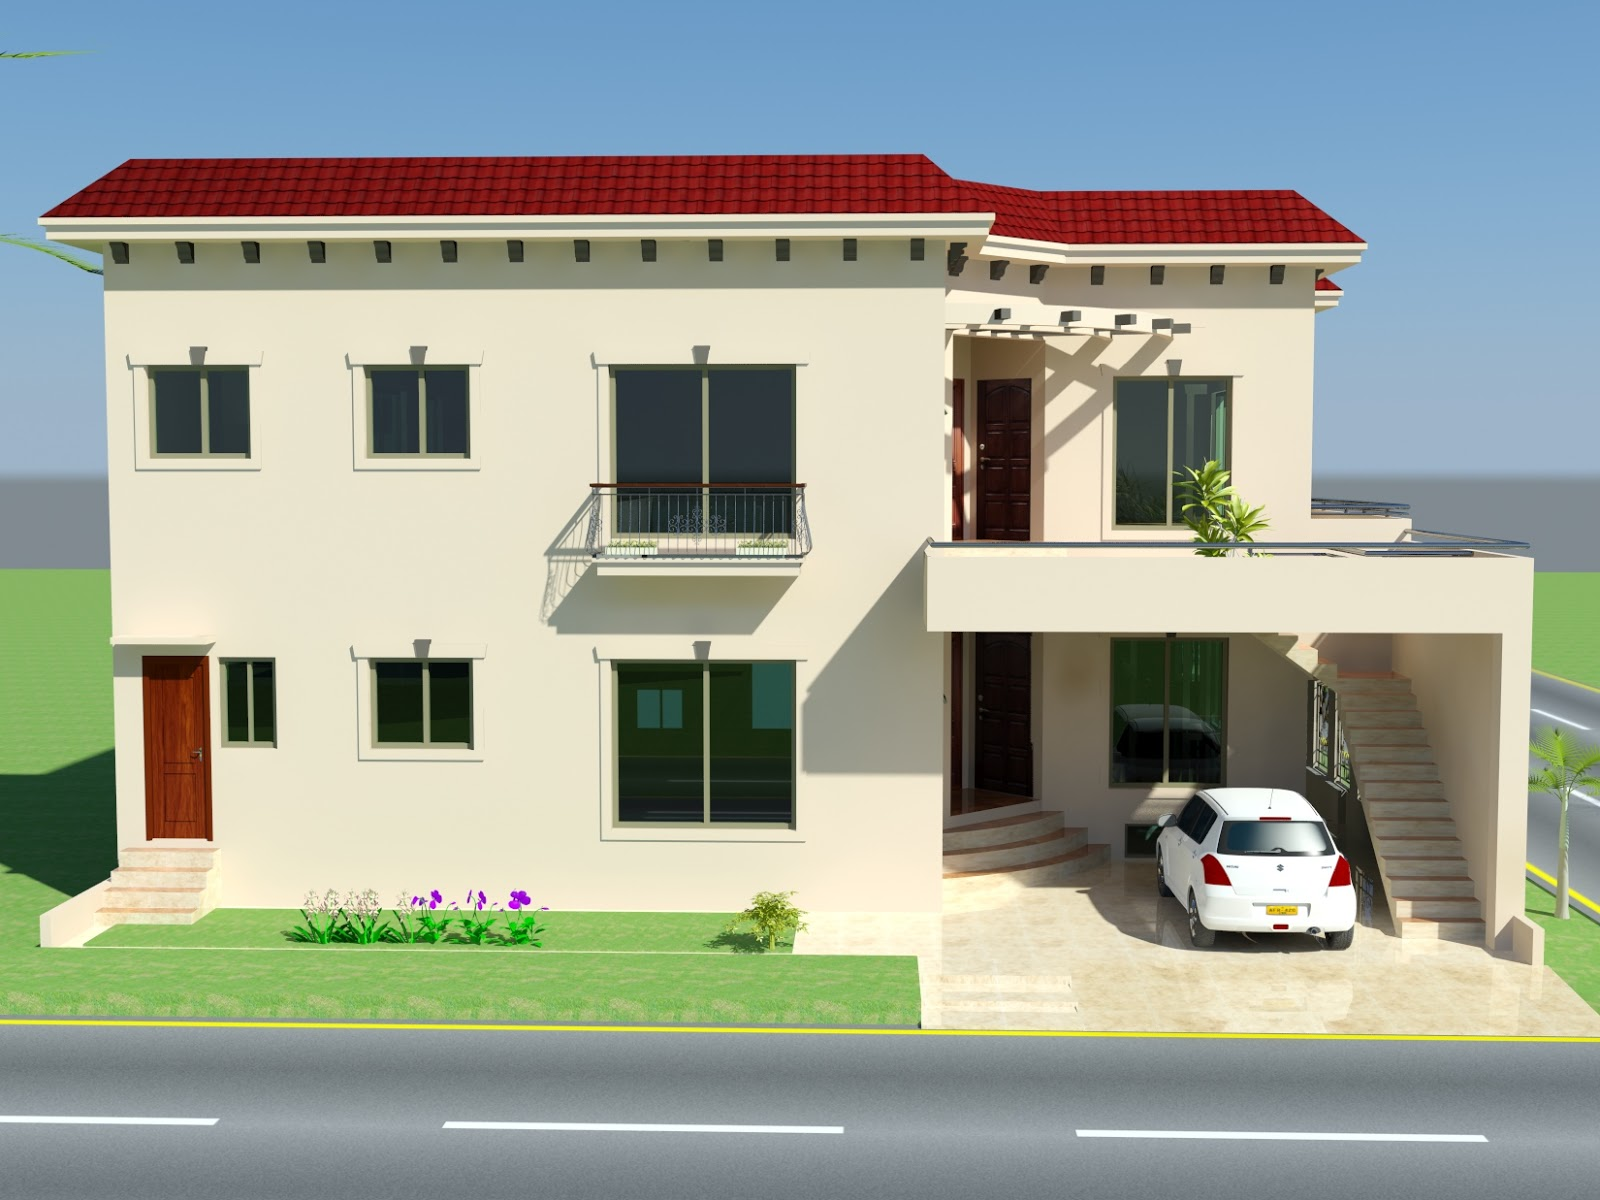 10 Marla House Design Pakistan